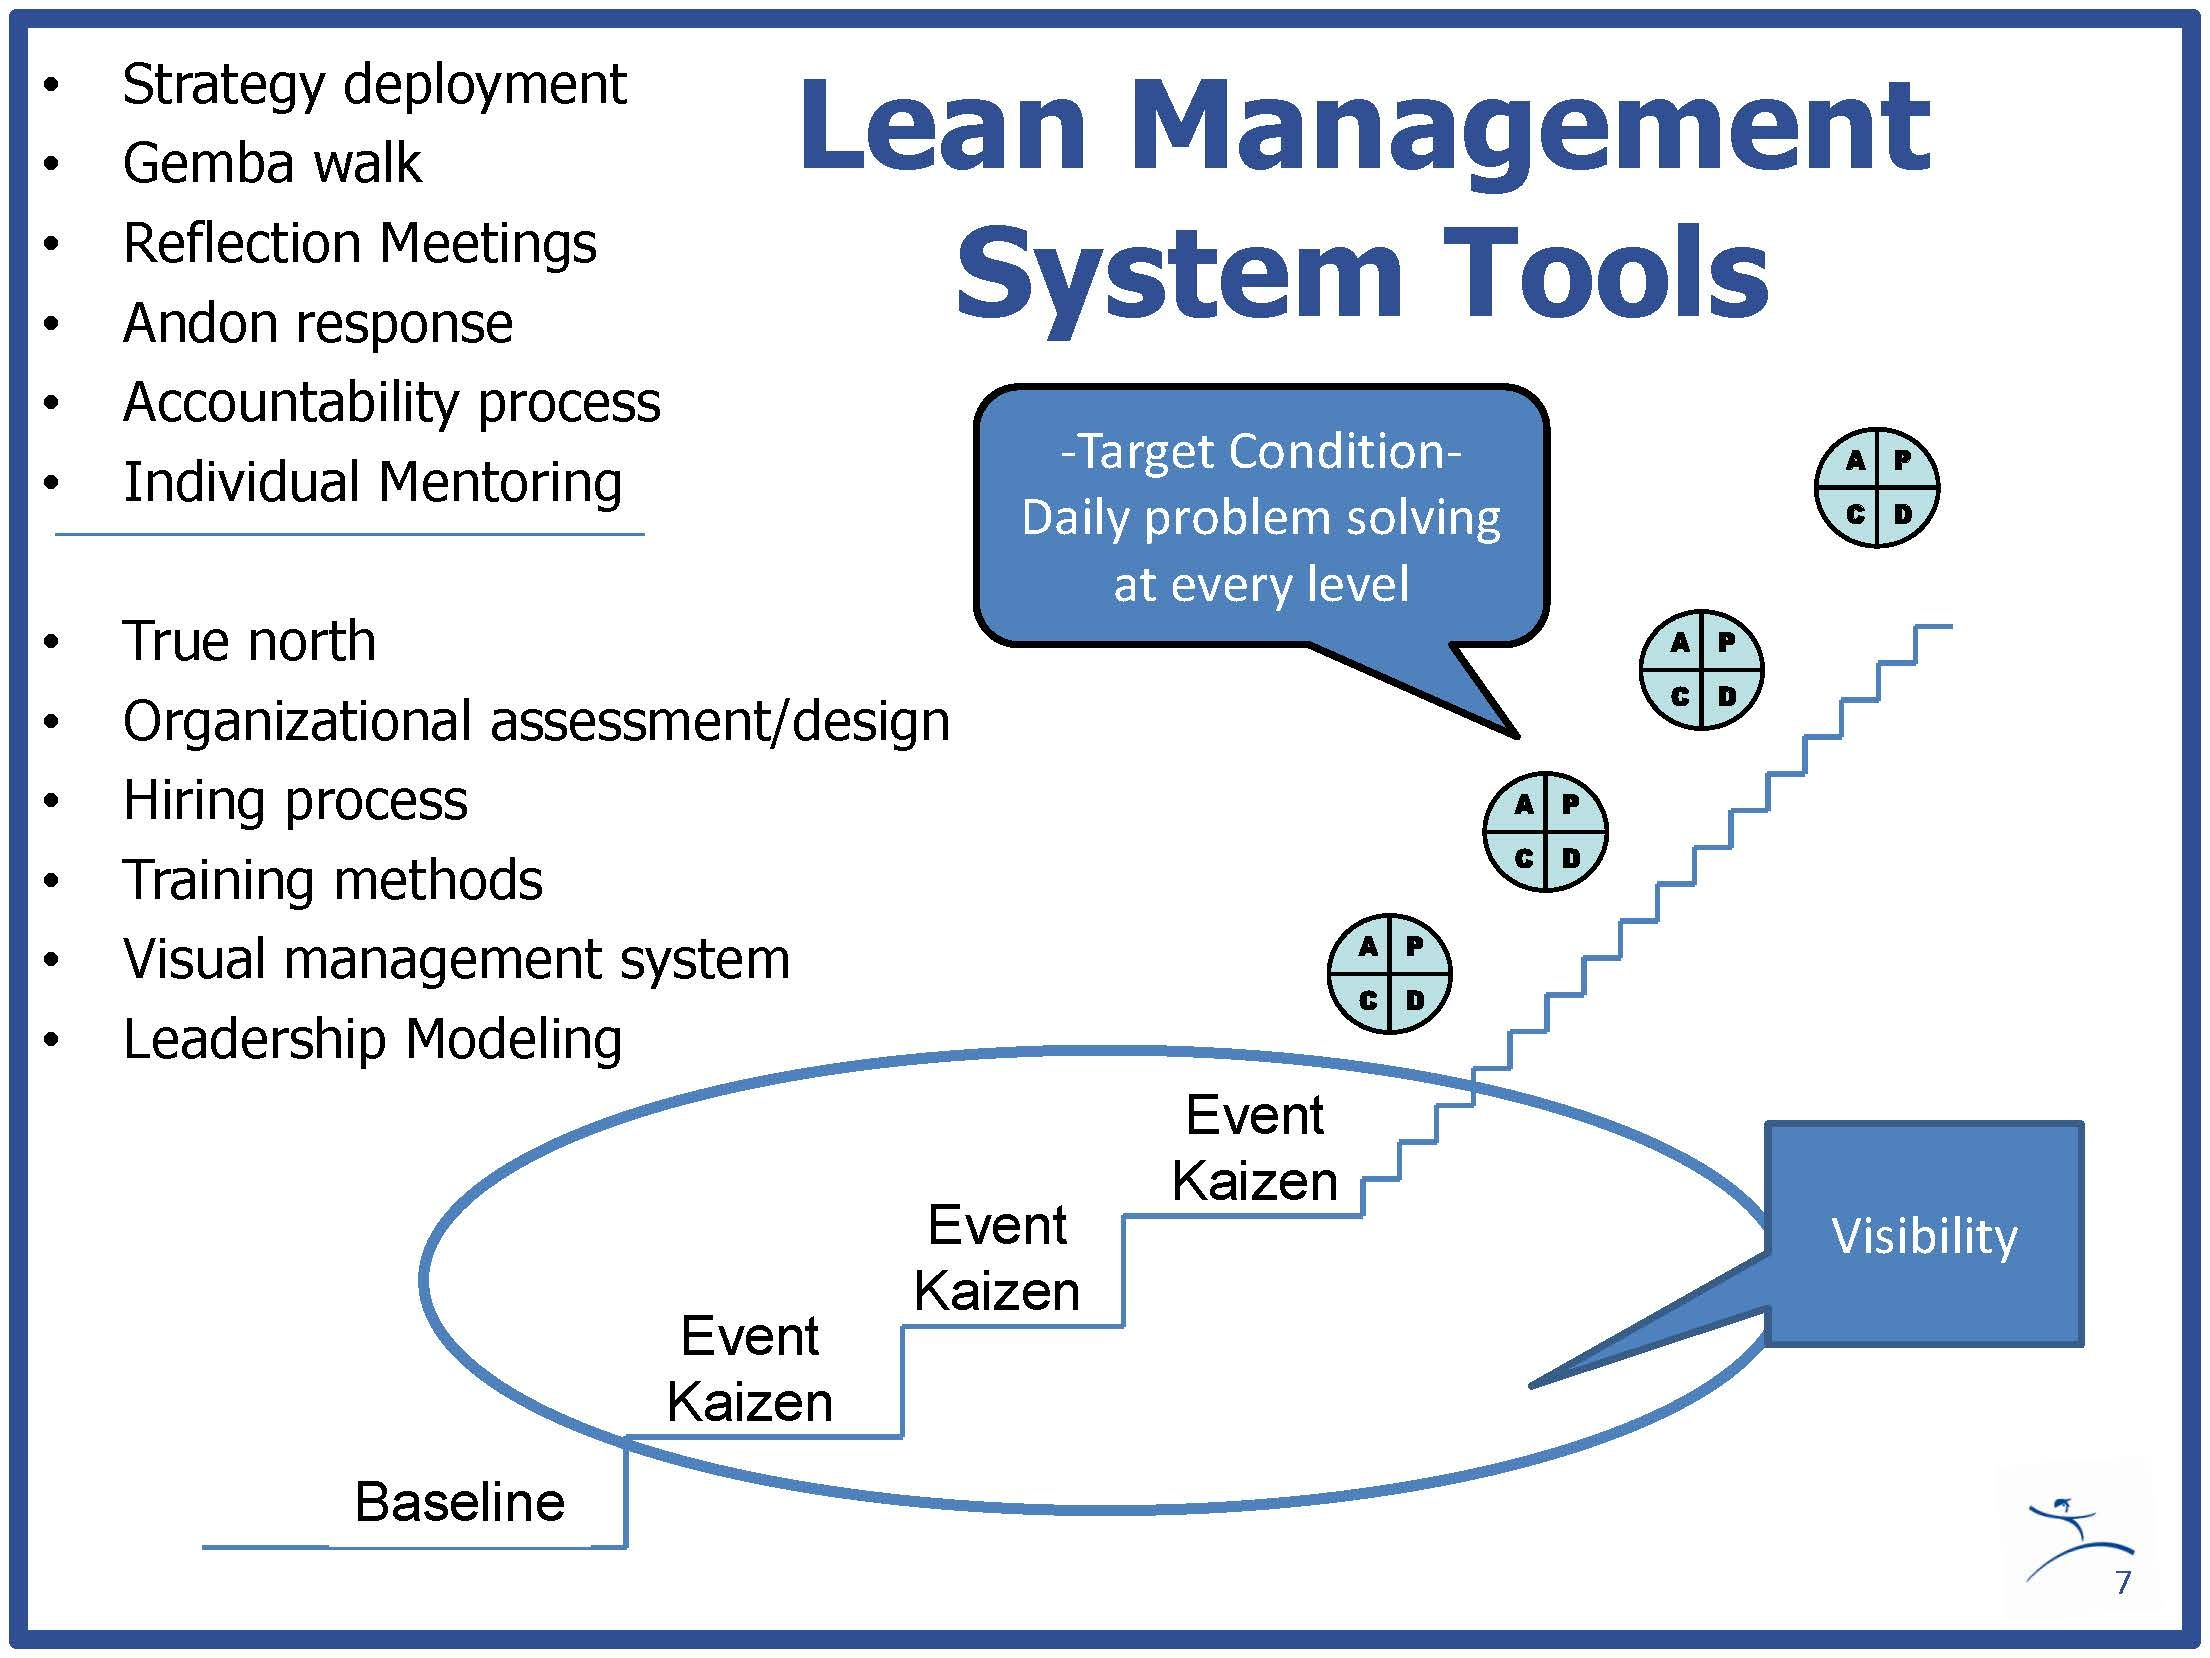 Lean Management System Tools